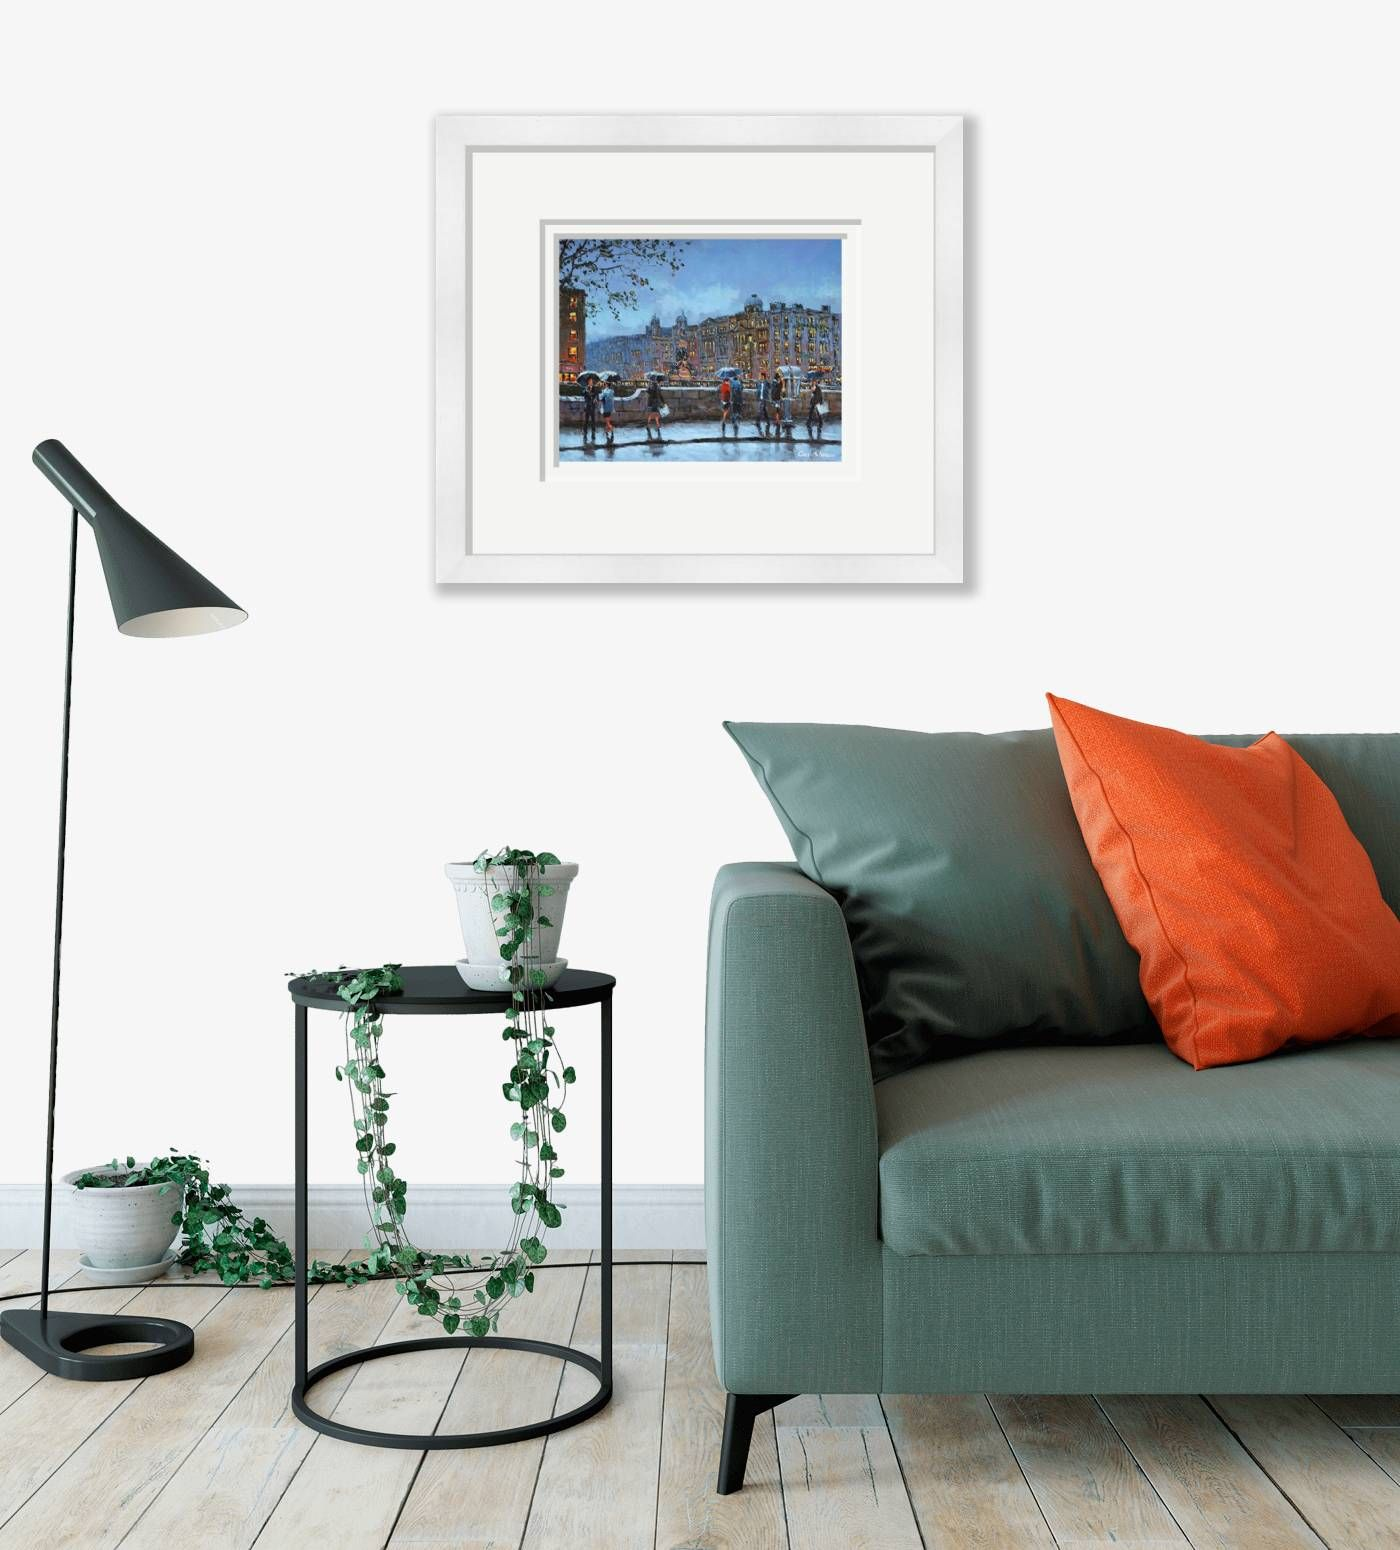 Large framed - Towards O'Connell Bridge - 347 by Chris McMorrow